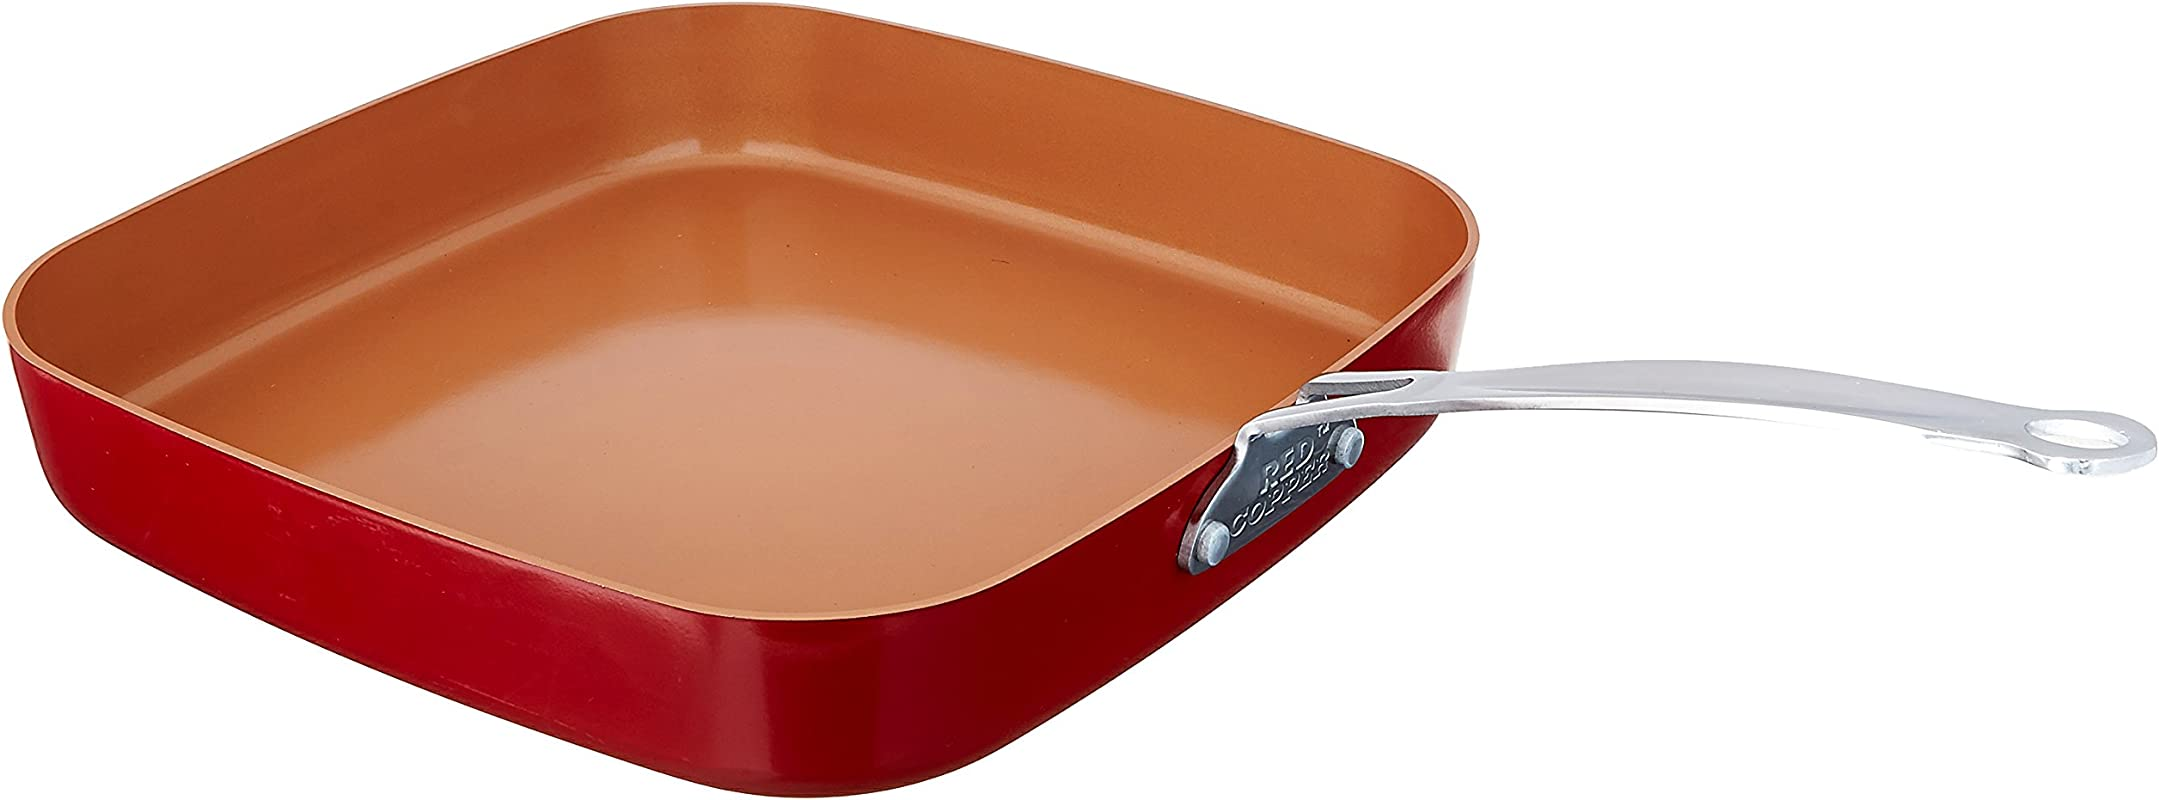 Red Copper Cookware 10 And 12 Inch Square Frying Pan Set Of 2 By BulbHead